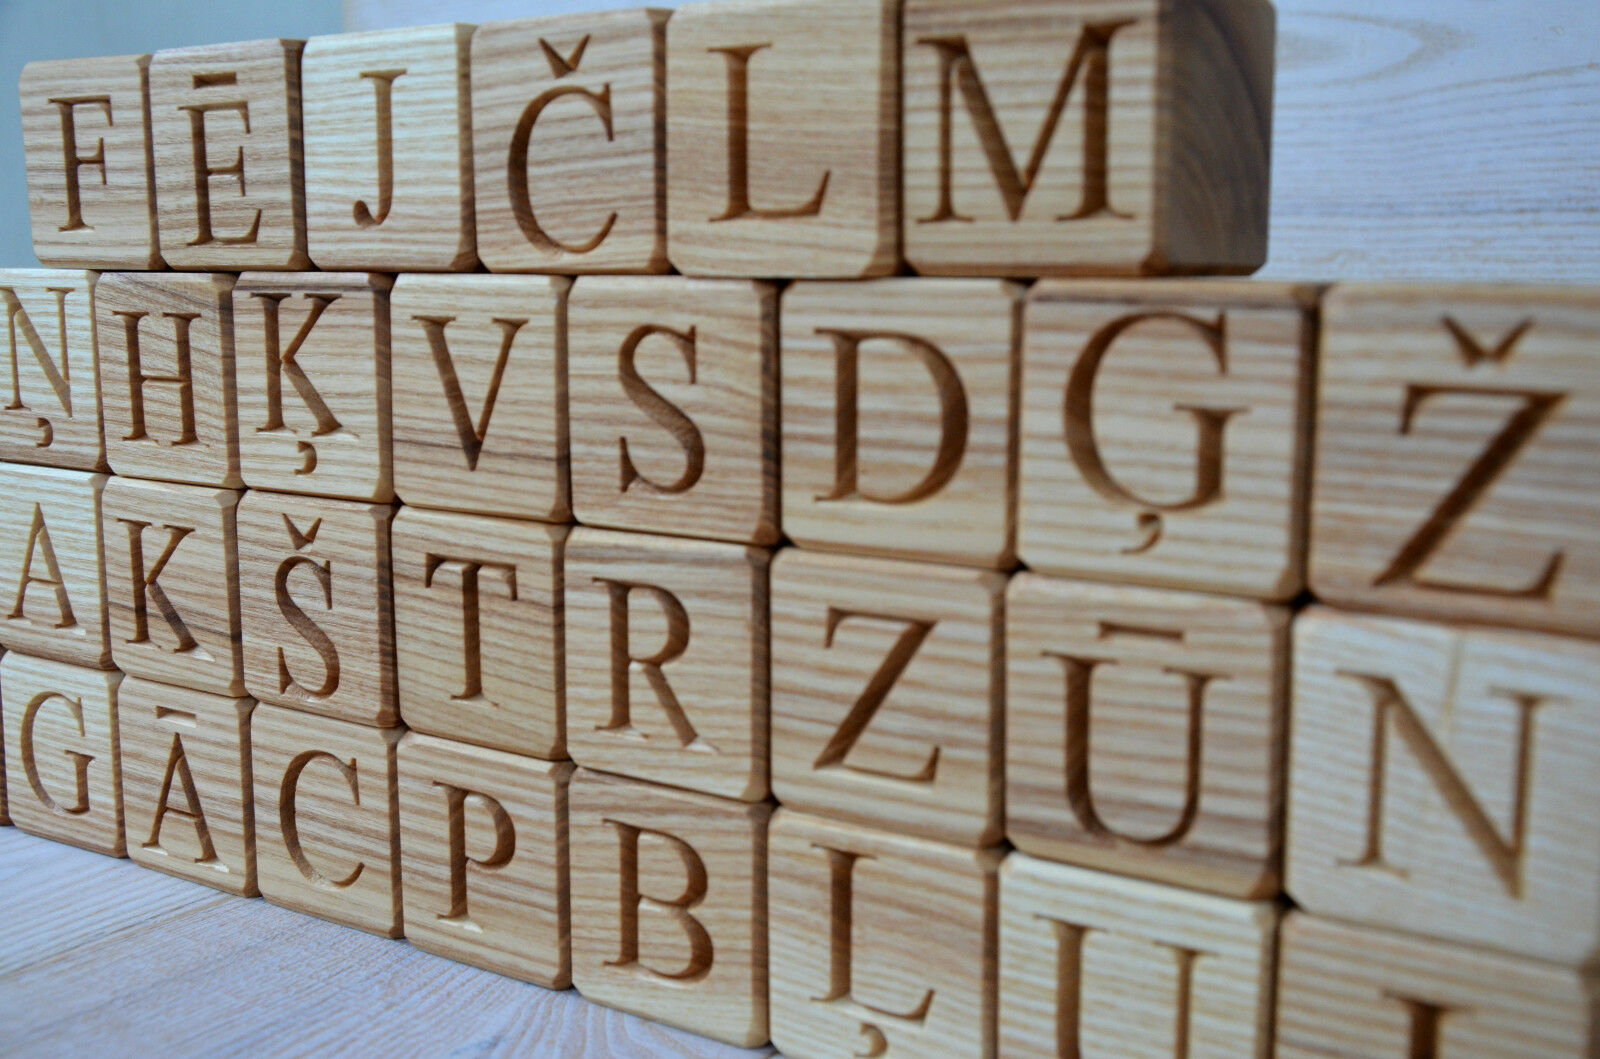 33 Latvian Alphabet Wood Blocks Wood Cubes with Letters ABC Blocks